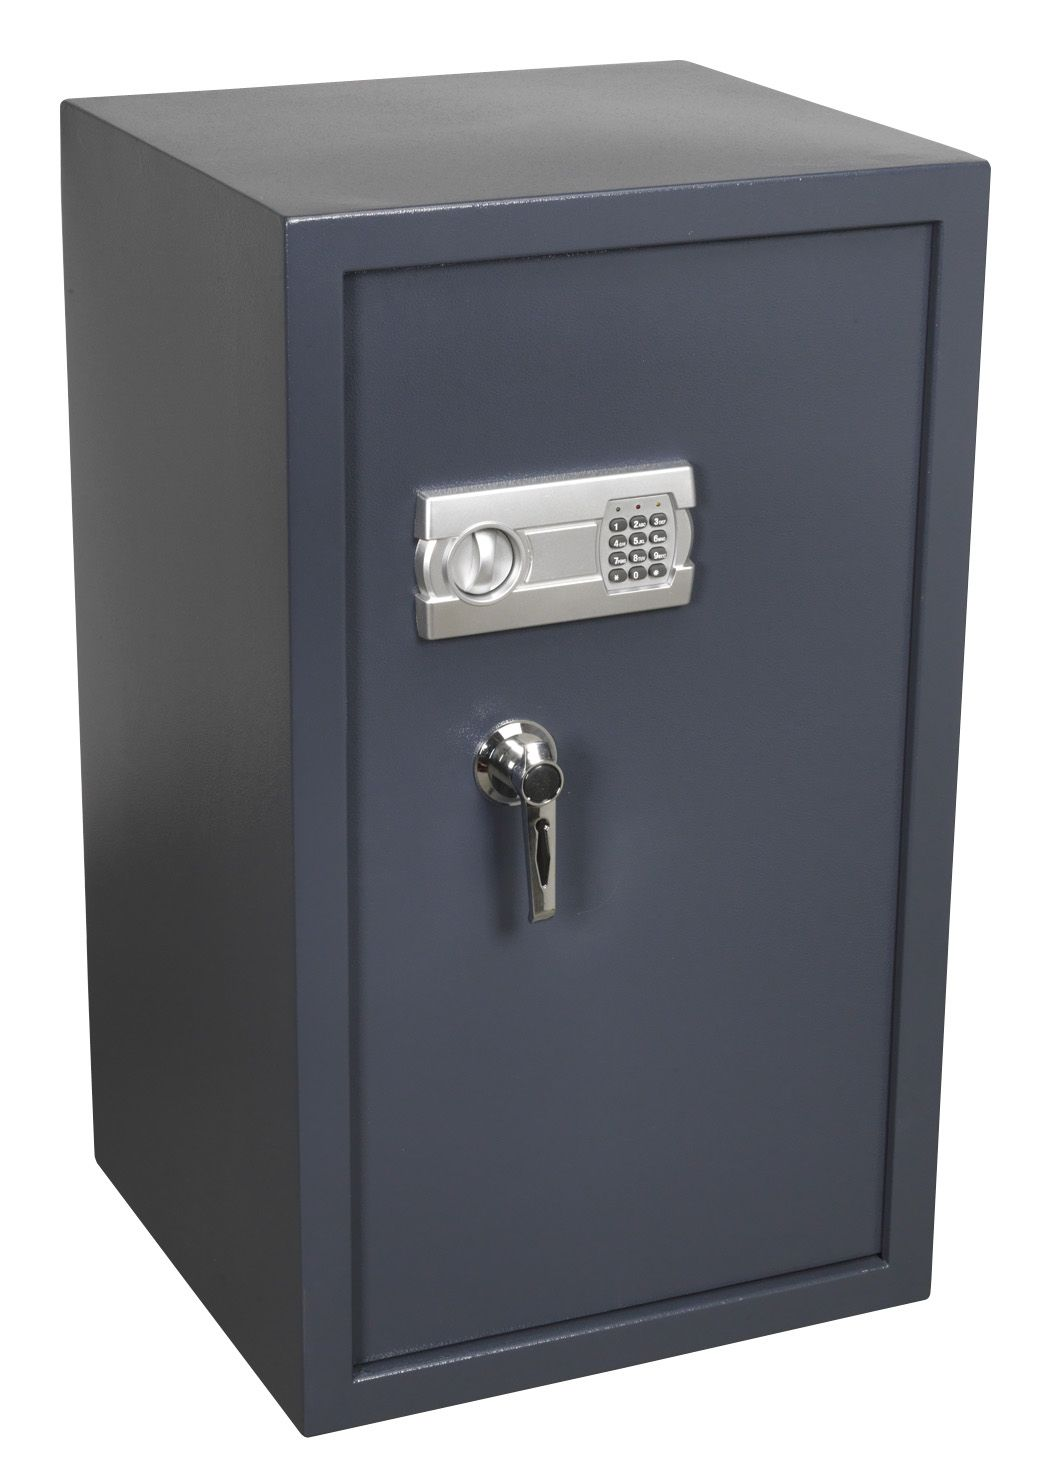 Sealey Electronic Combination Security Safe 515 x 480 x 890mm